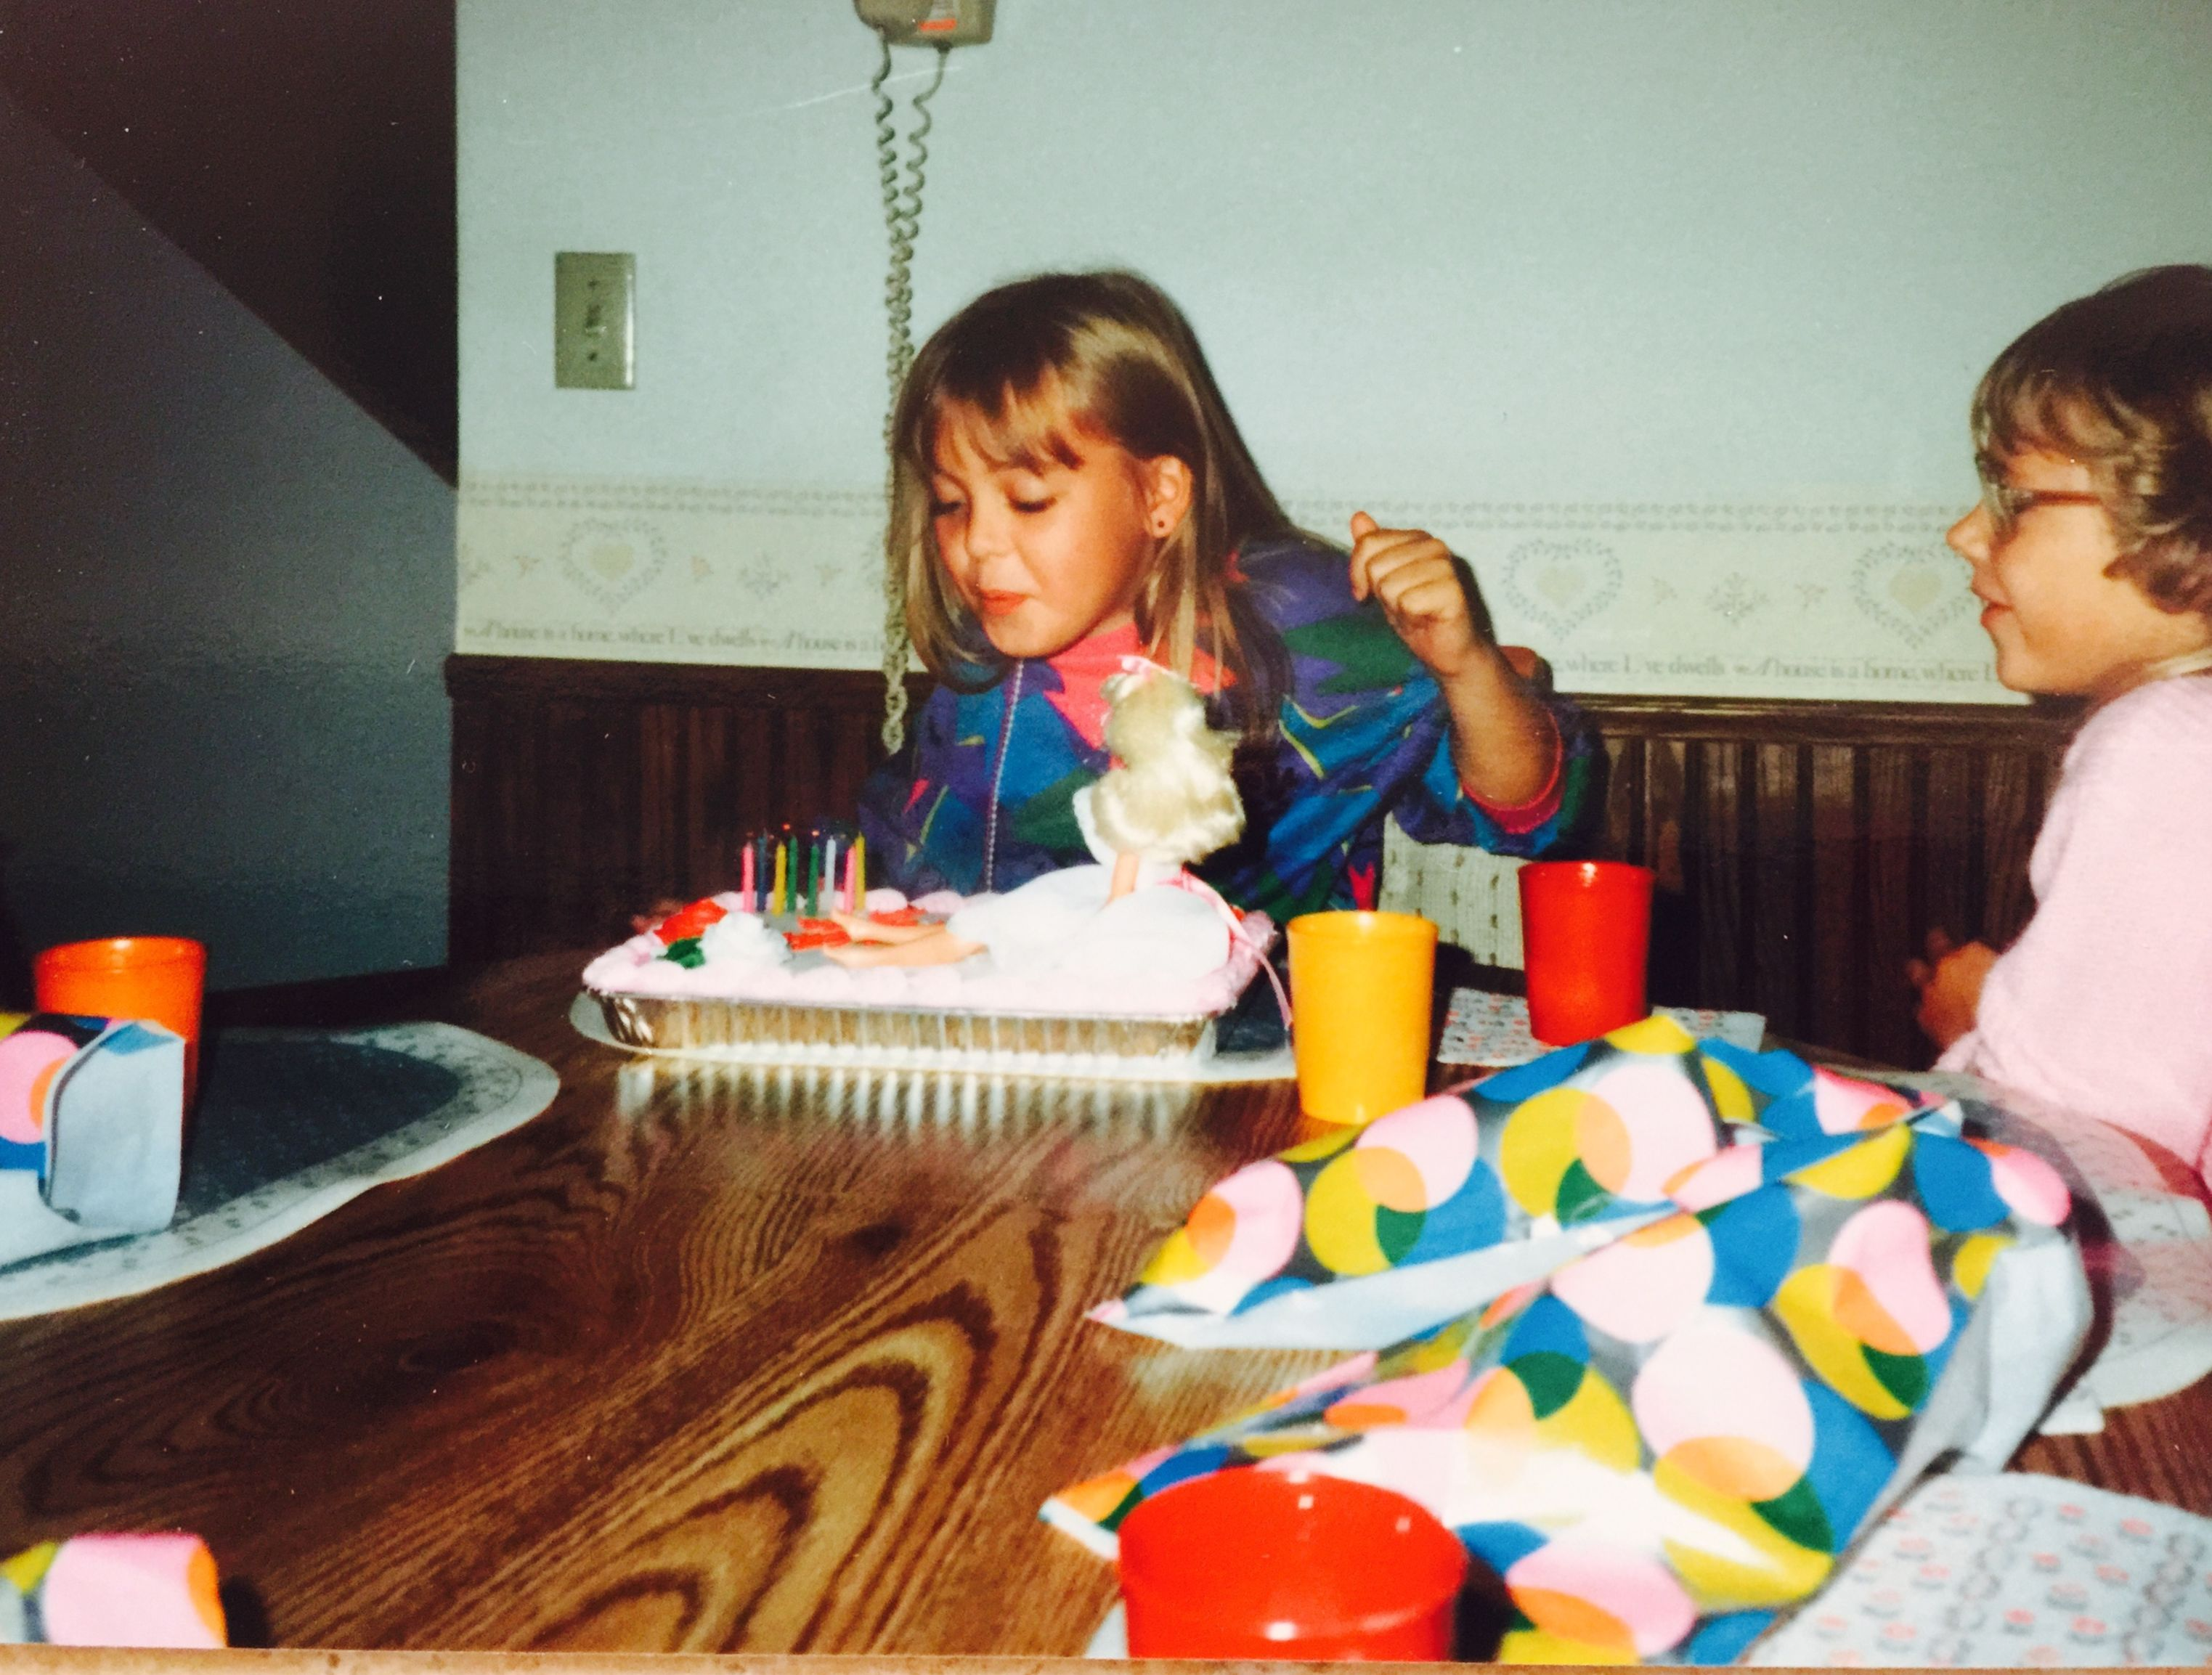 Scanned image of an old photo showing a girl blowing out the candles on her birthday cake.